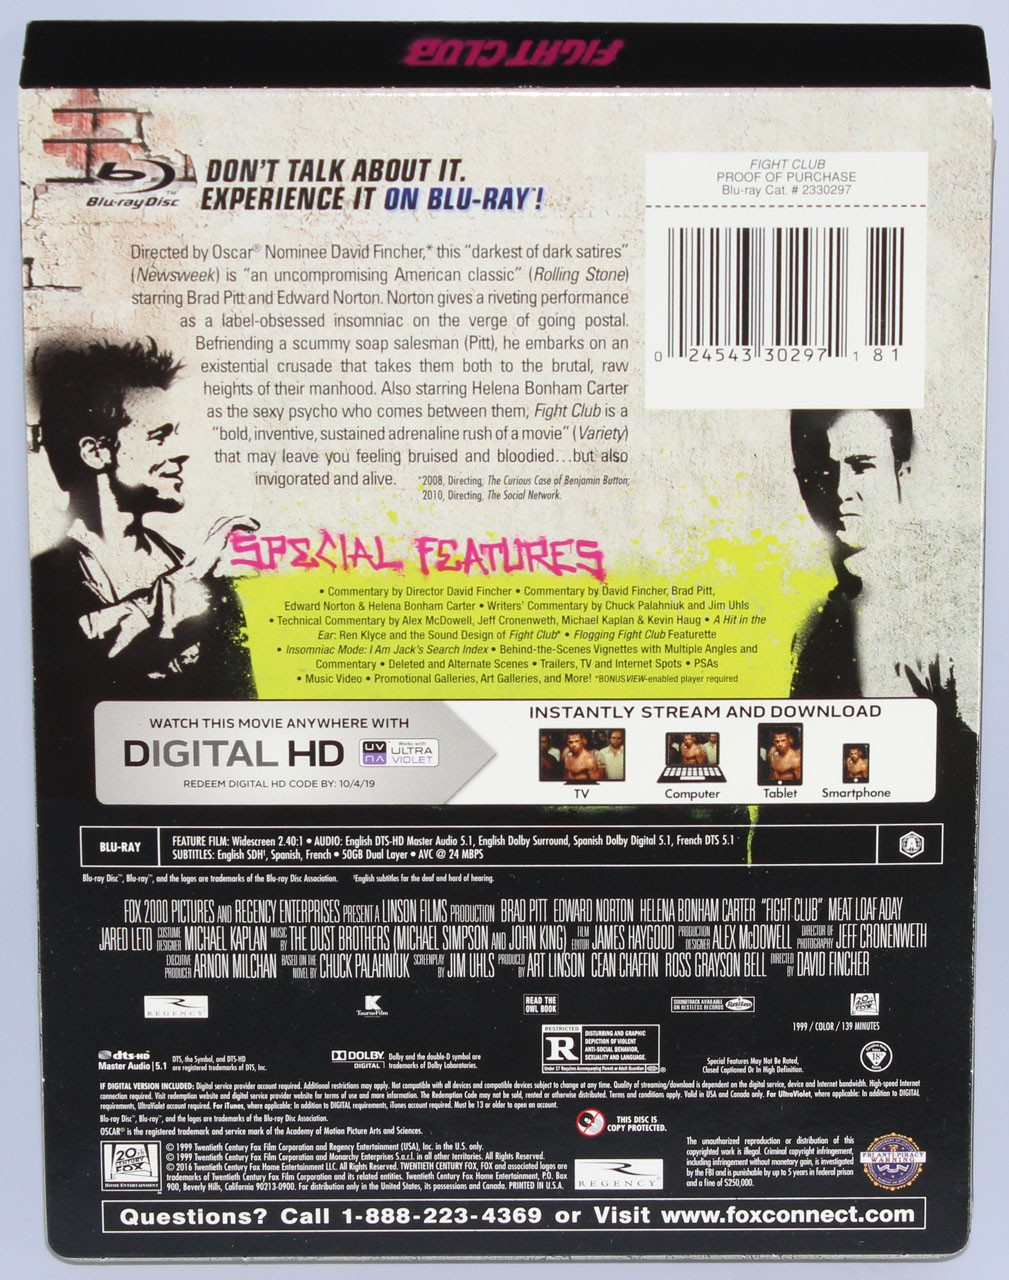 fight club blu ray  Negozio di sconti online,Fight Club Blu Ray